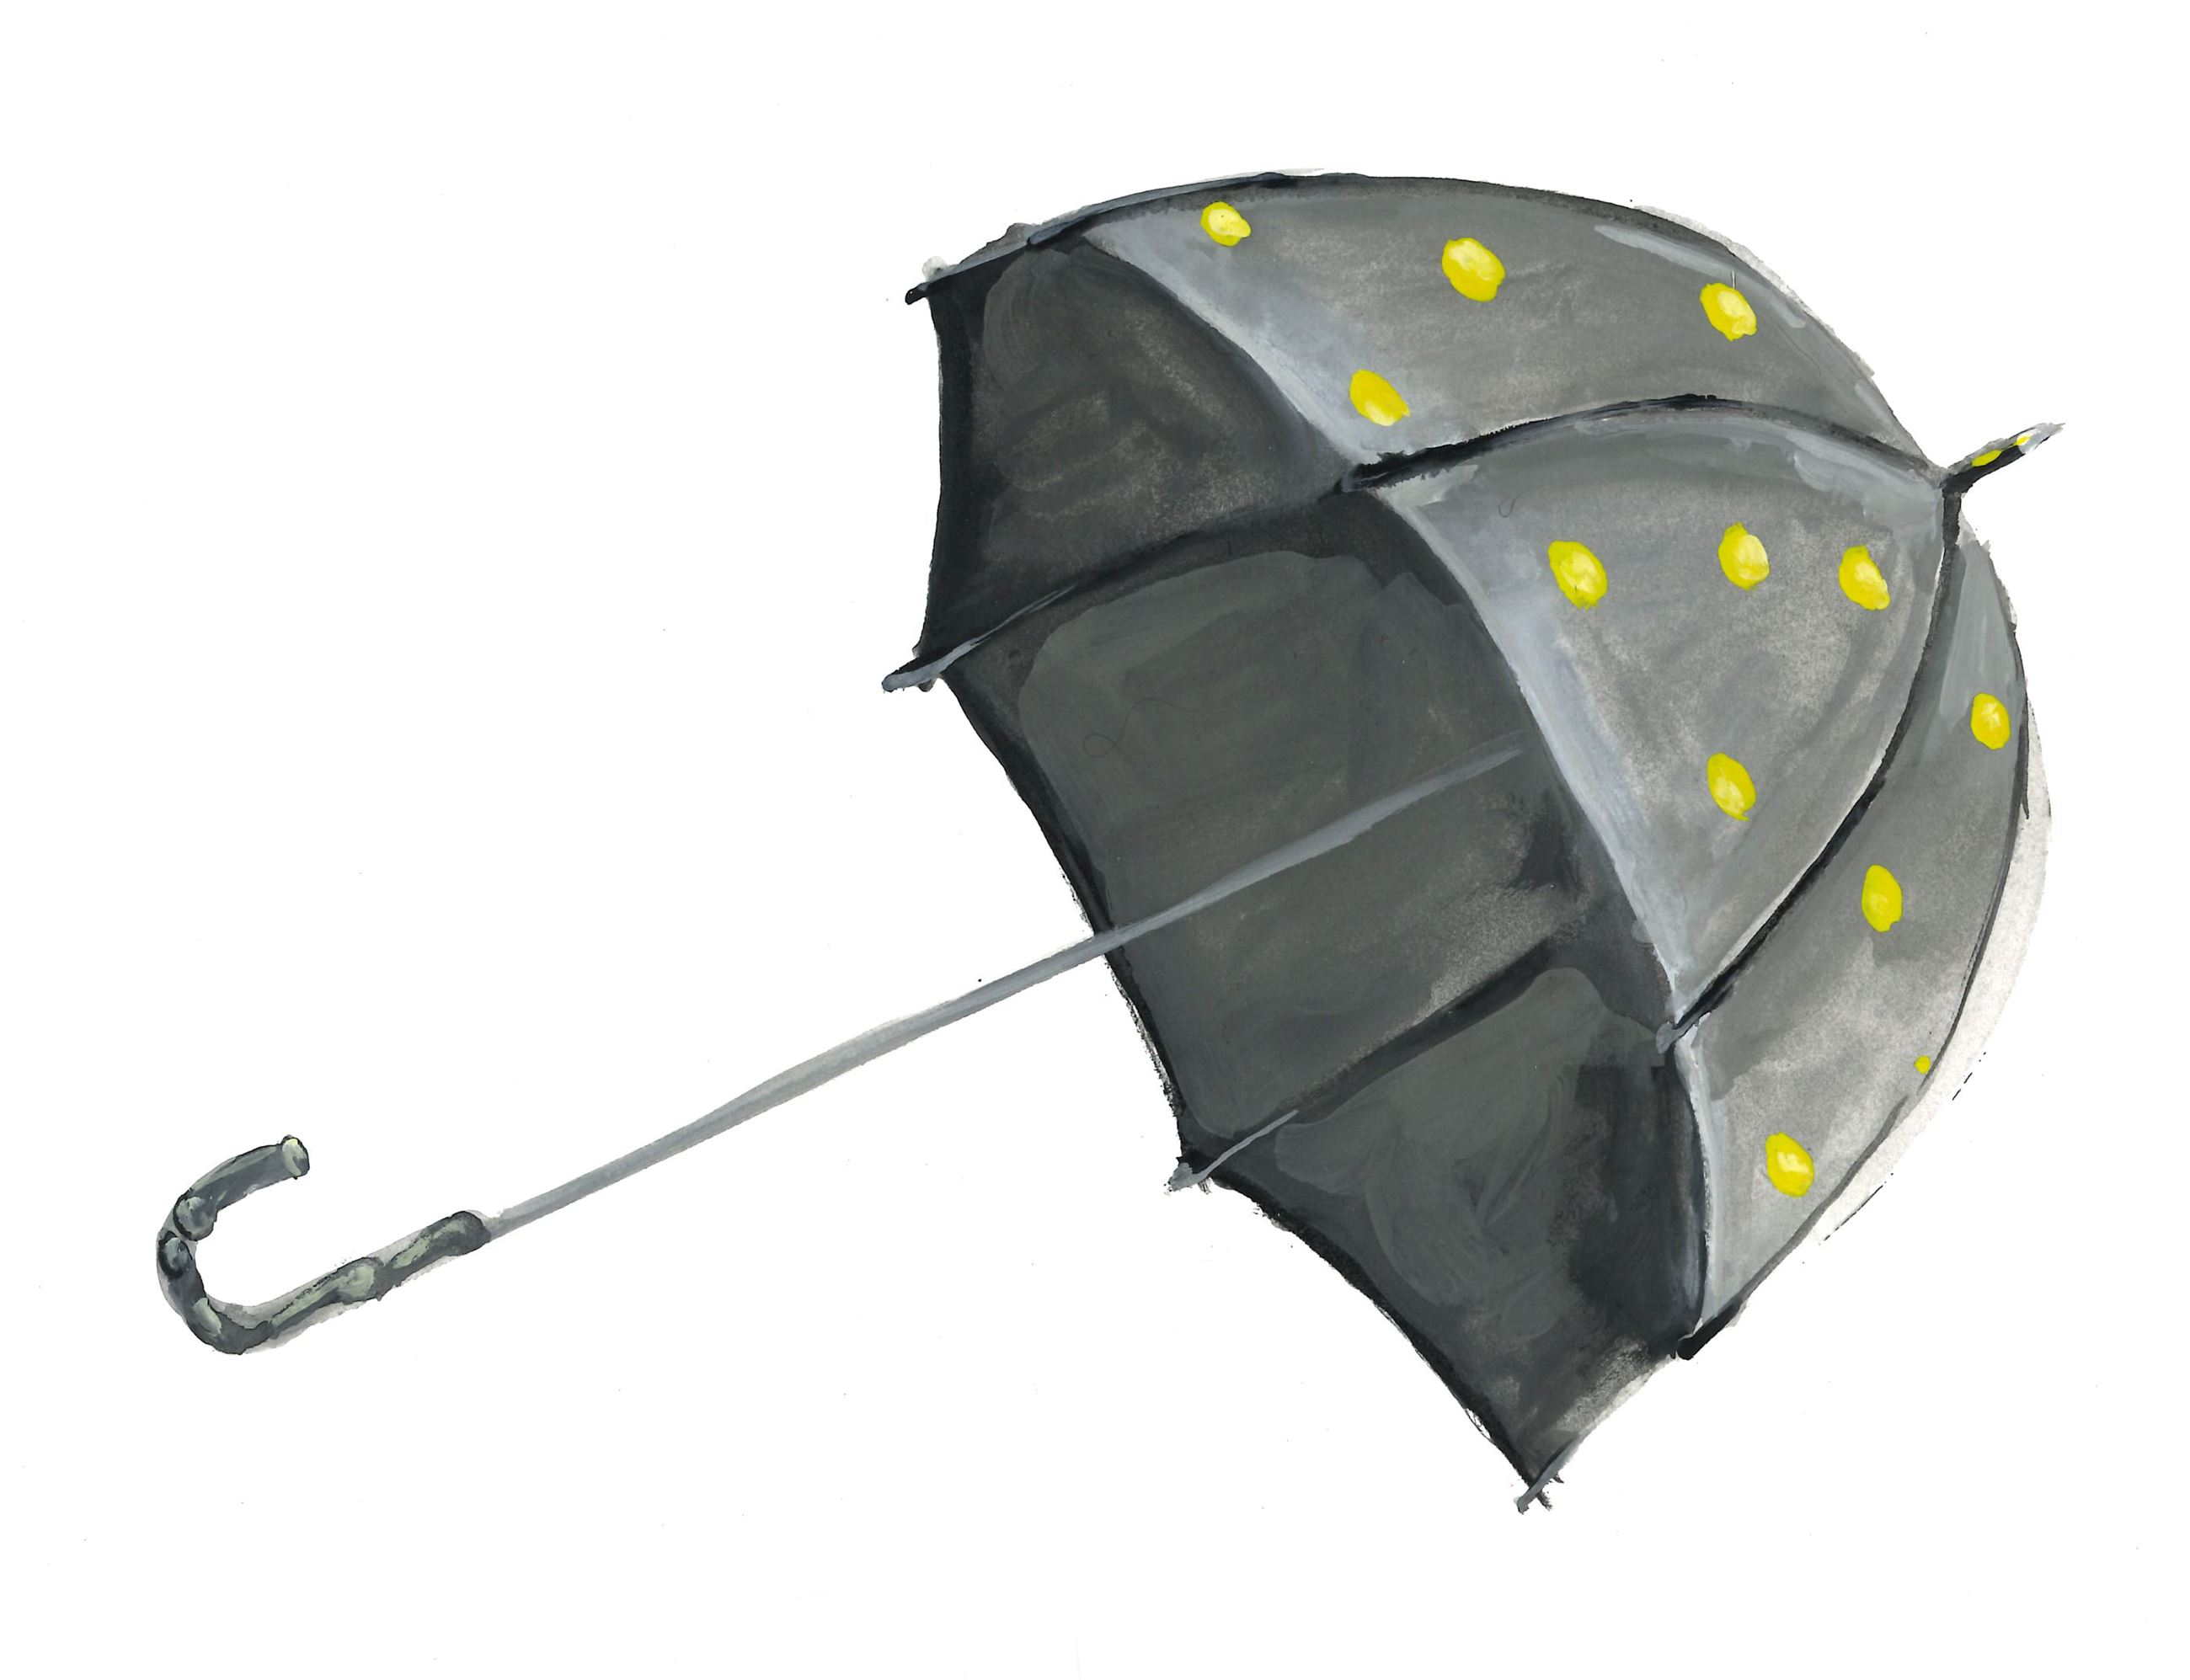 Steel Umbrella by artists Justin O'Rourke & Margaret Jacobs